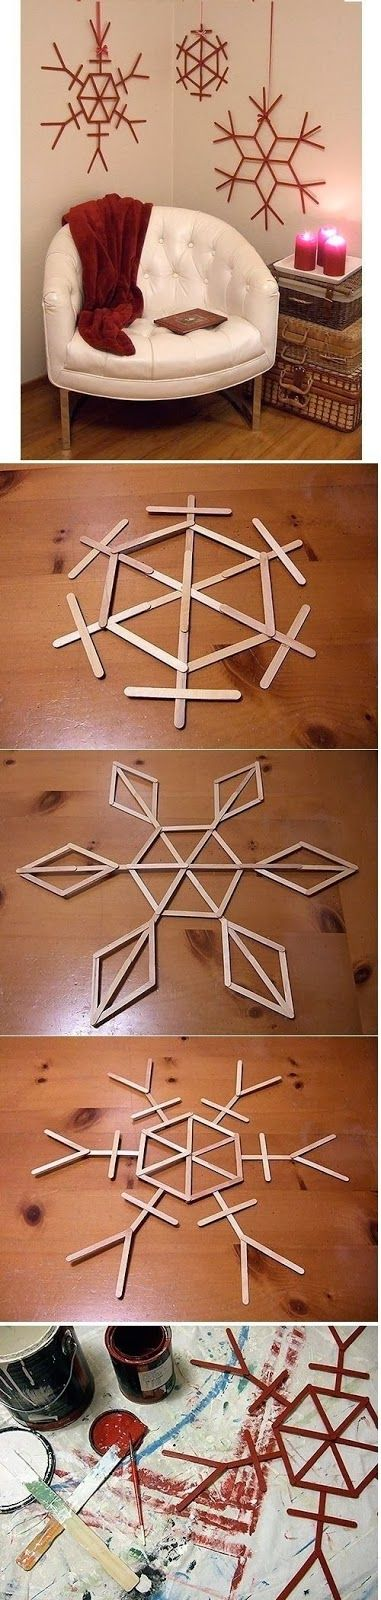 Popsicle snowflakes. It would be cute to hang them from the ceiling around the tree. | A 1 Nice Blog